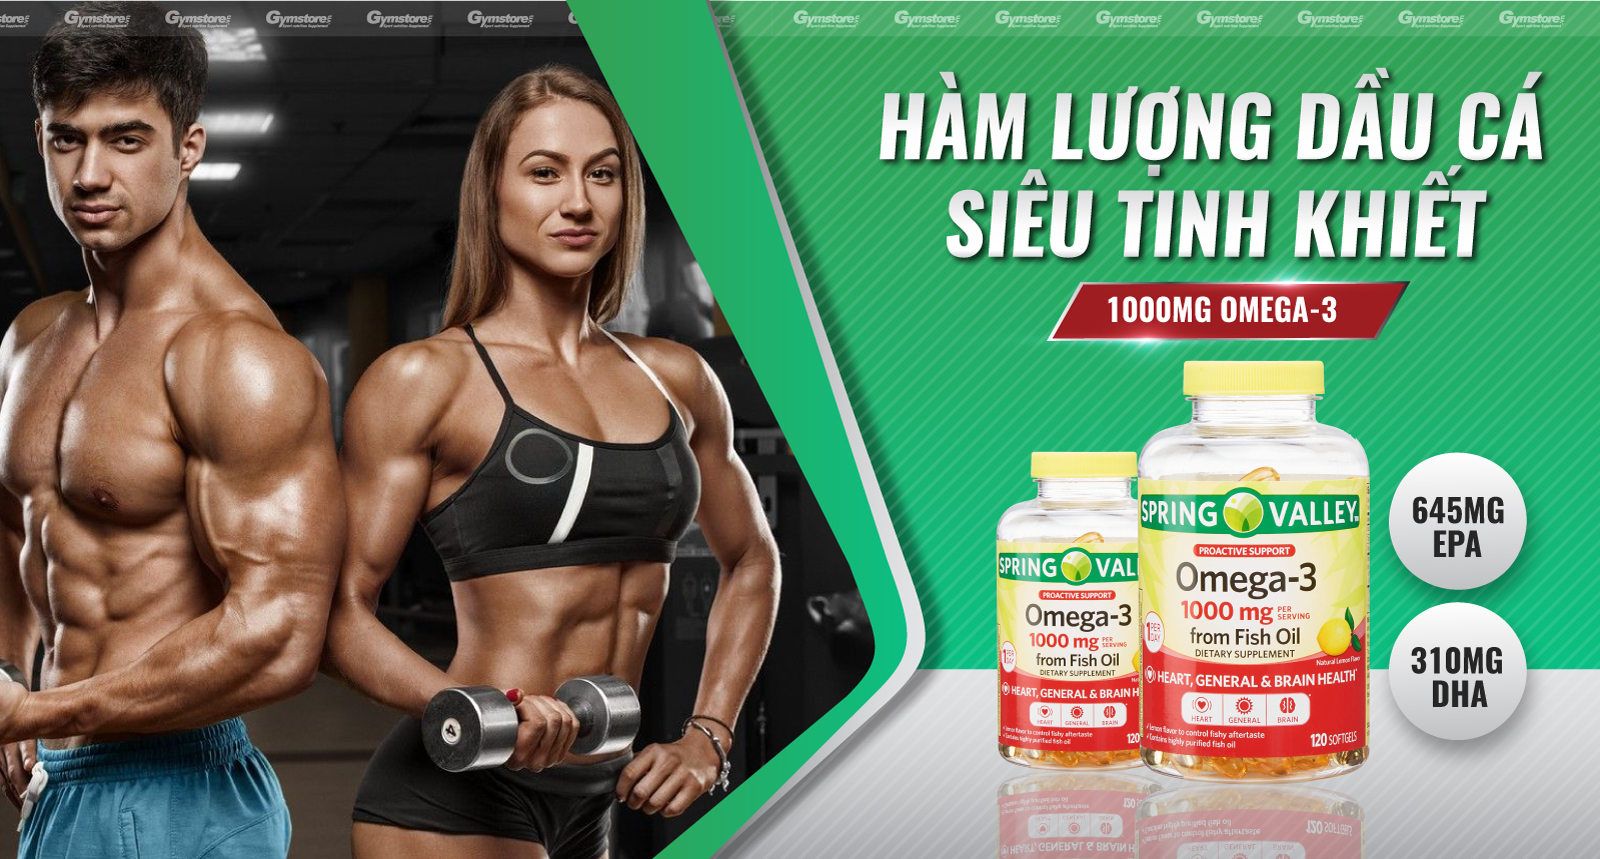 Spring-Valley-Omega-3-dau-ca-tinh-khiet-chat-beo-tot-nhat-gymstore